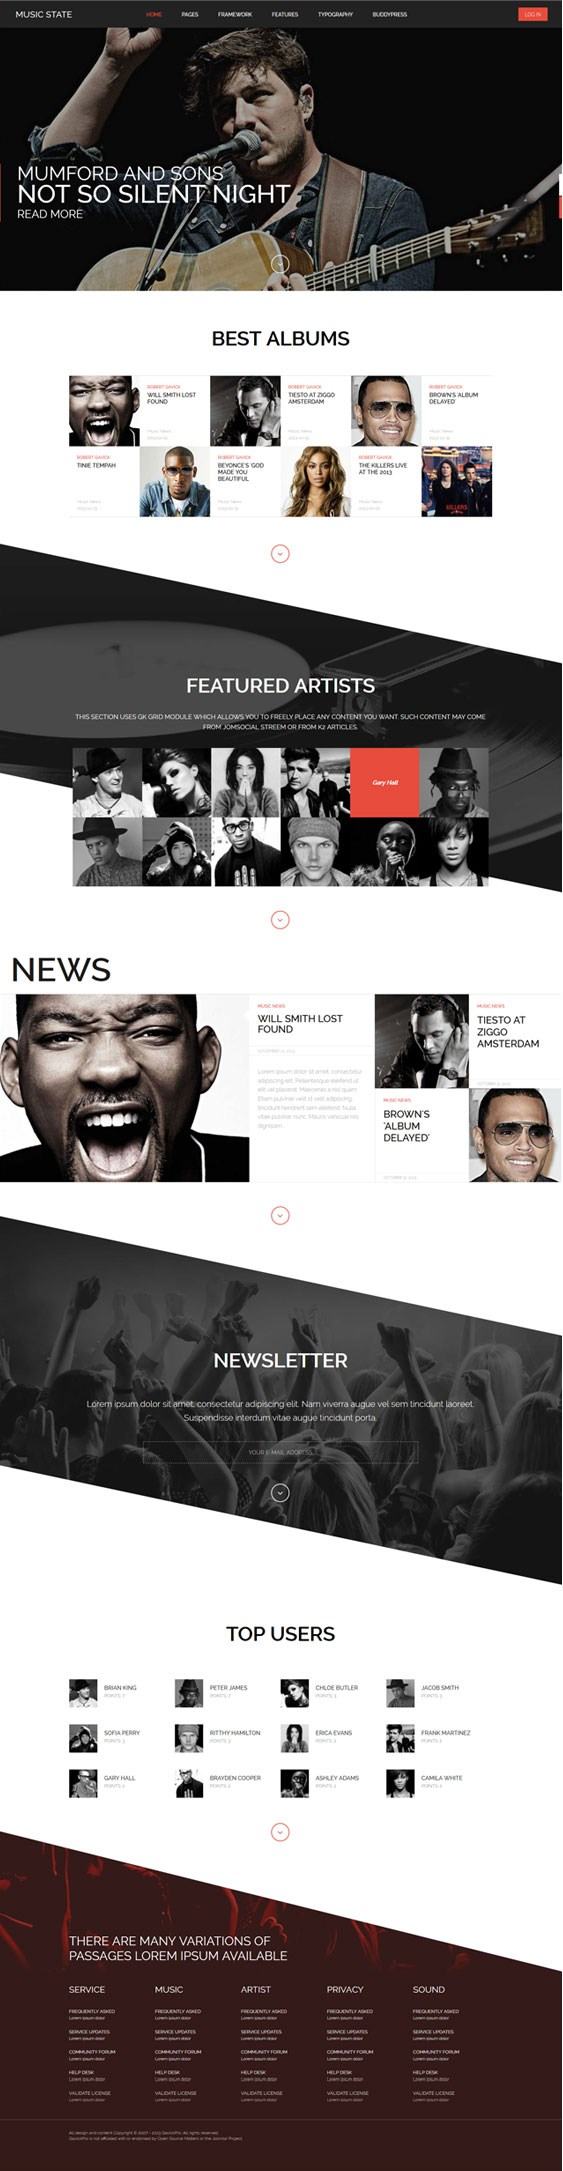 Music State - BuddyPress WordPress Theme